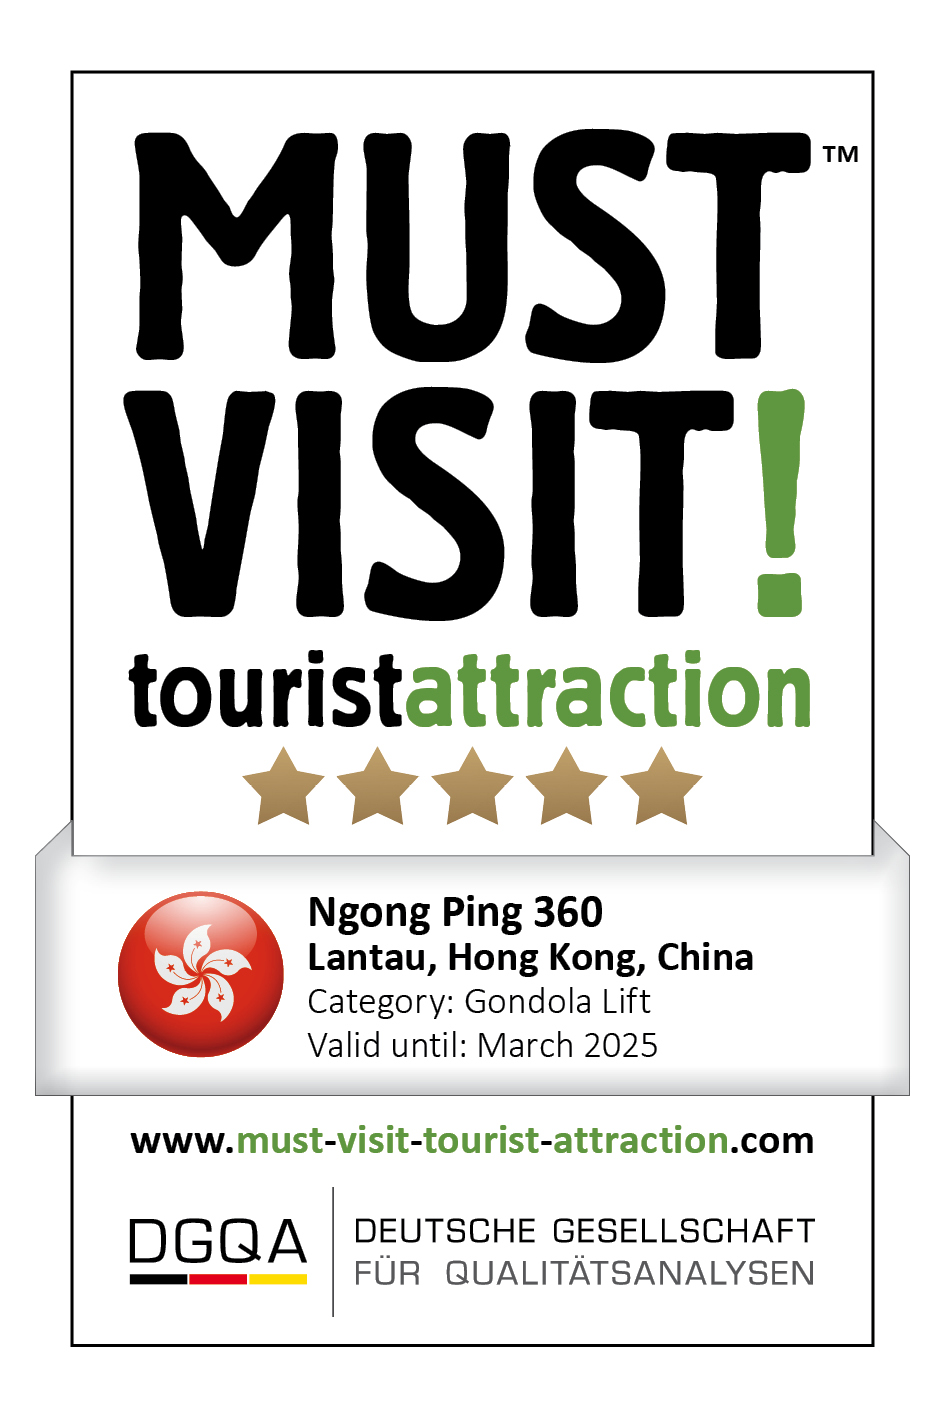 MUST VISIT! tourist attraction (dgqa) ngong ping 360